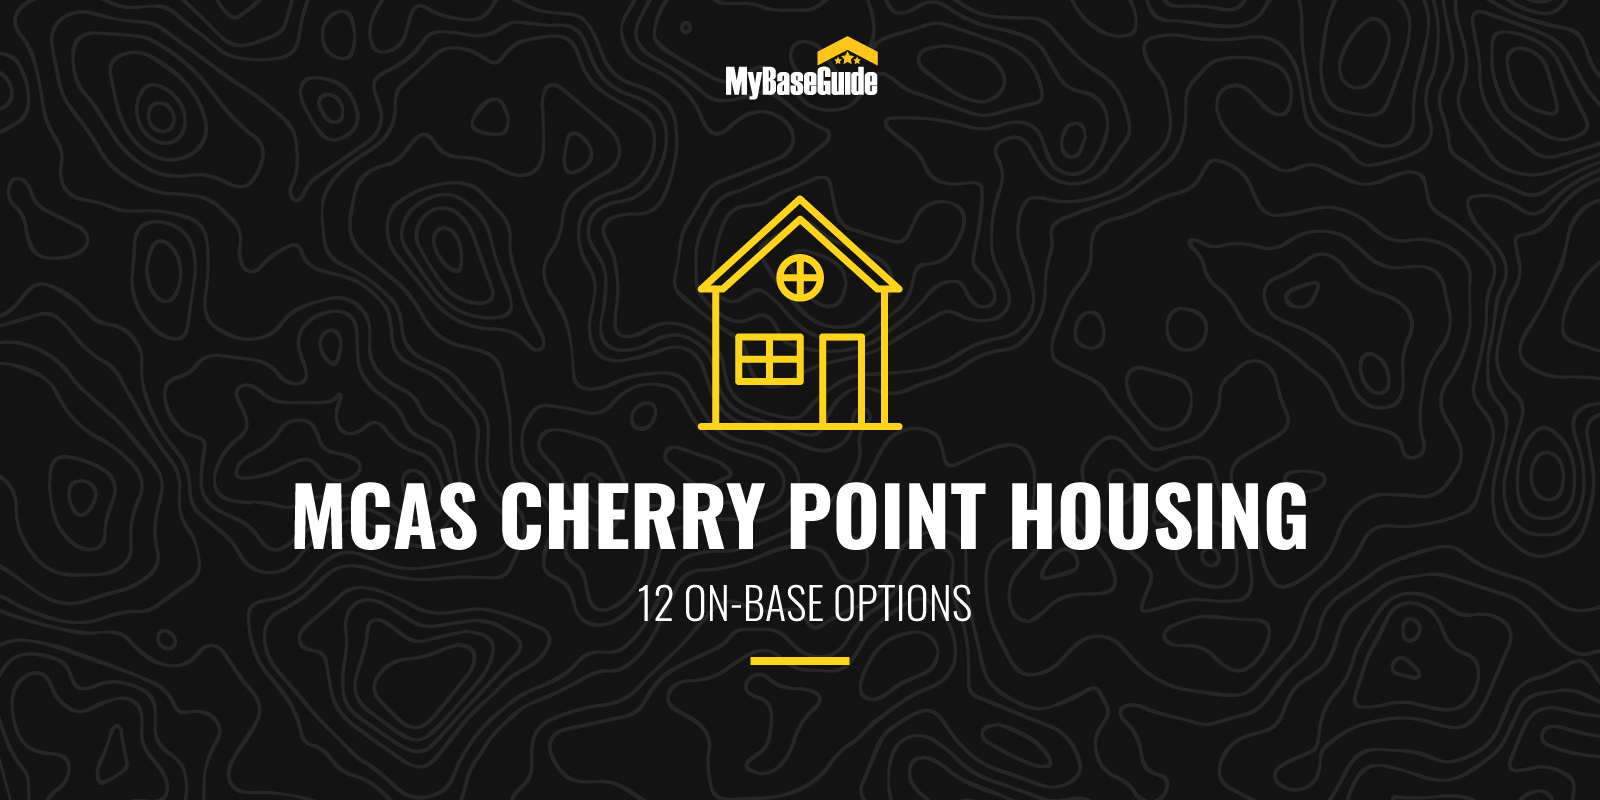 MCAS Cherry Point Housing: 12 On-Base Options